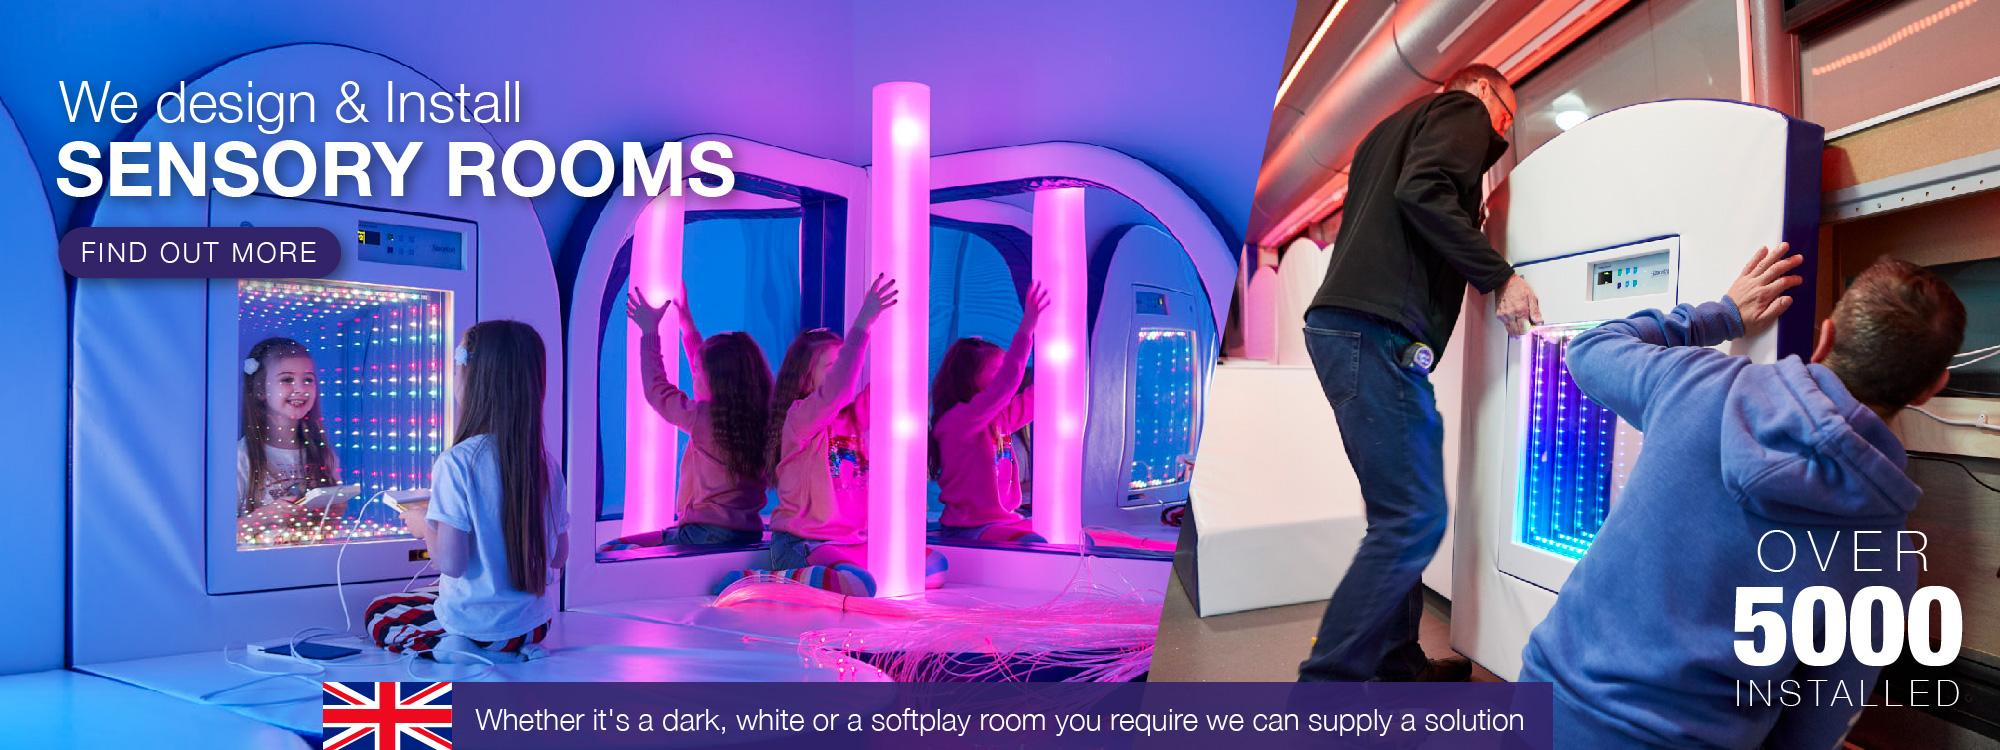 We have fitted over 500 Sensory Rooms